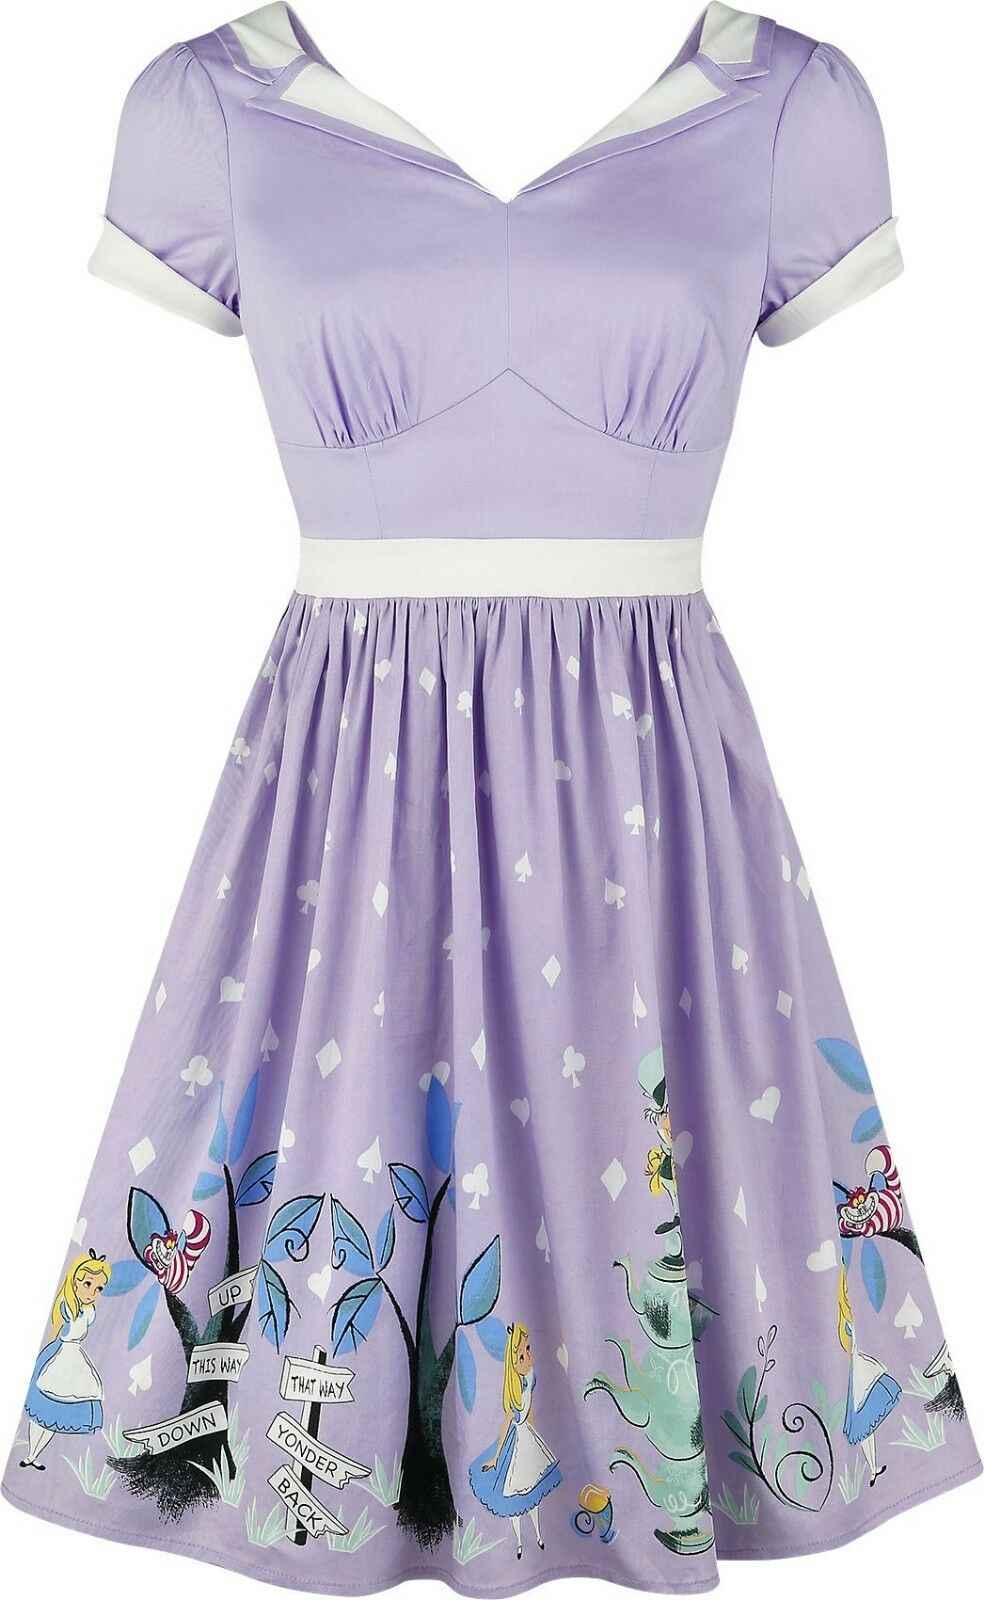 Alice in Wonderland Kawaii Lolita Cosplay Halloween Tea Party Dress Size M